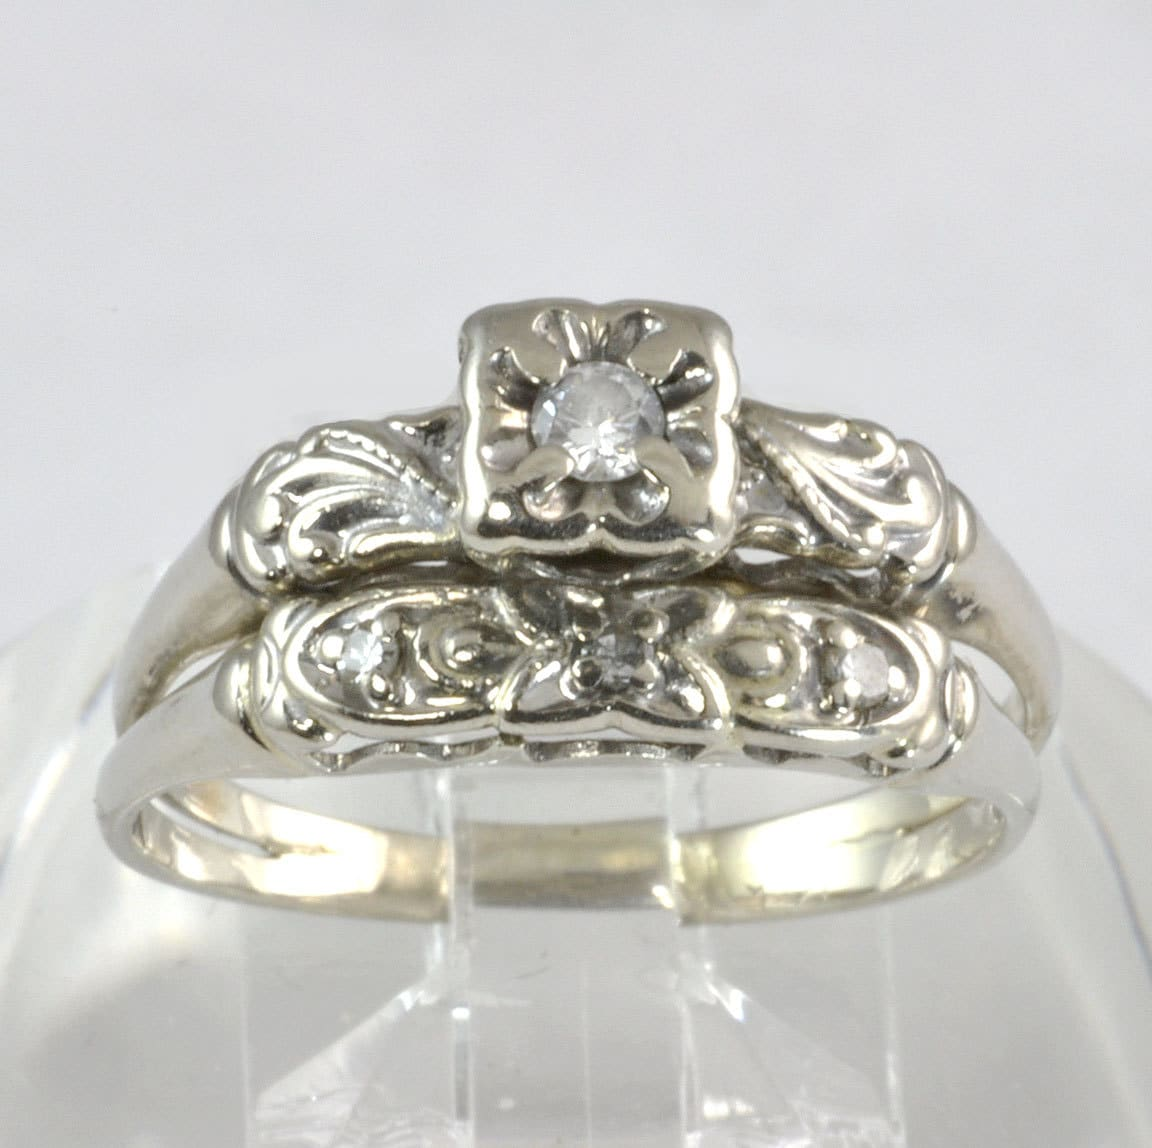 1940s 14k White Gold Vintage Diamond Engagement Ring And